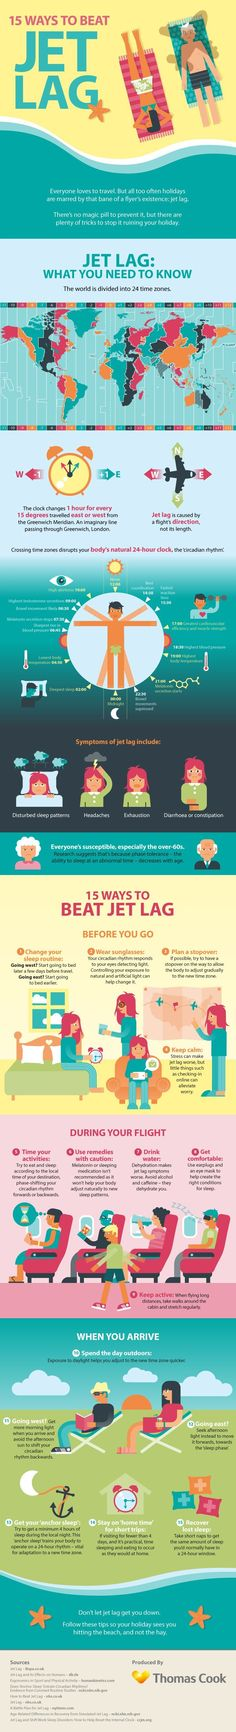 15 Ways to Beat Jet Lag #Travel | #Infographic repinned by @Piktochart | Create yours at www.piktochart.com